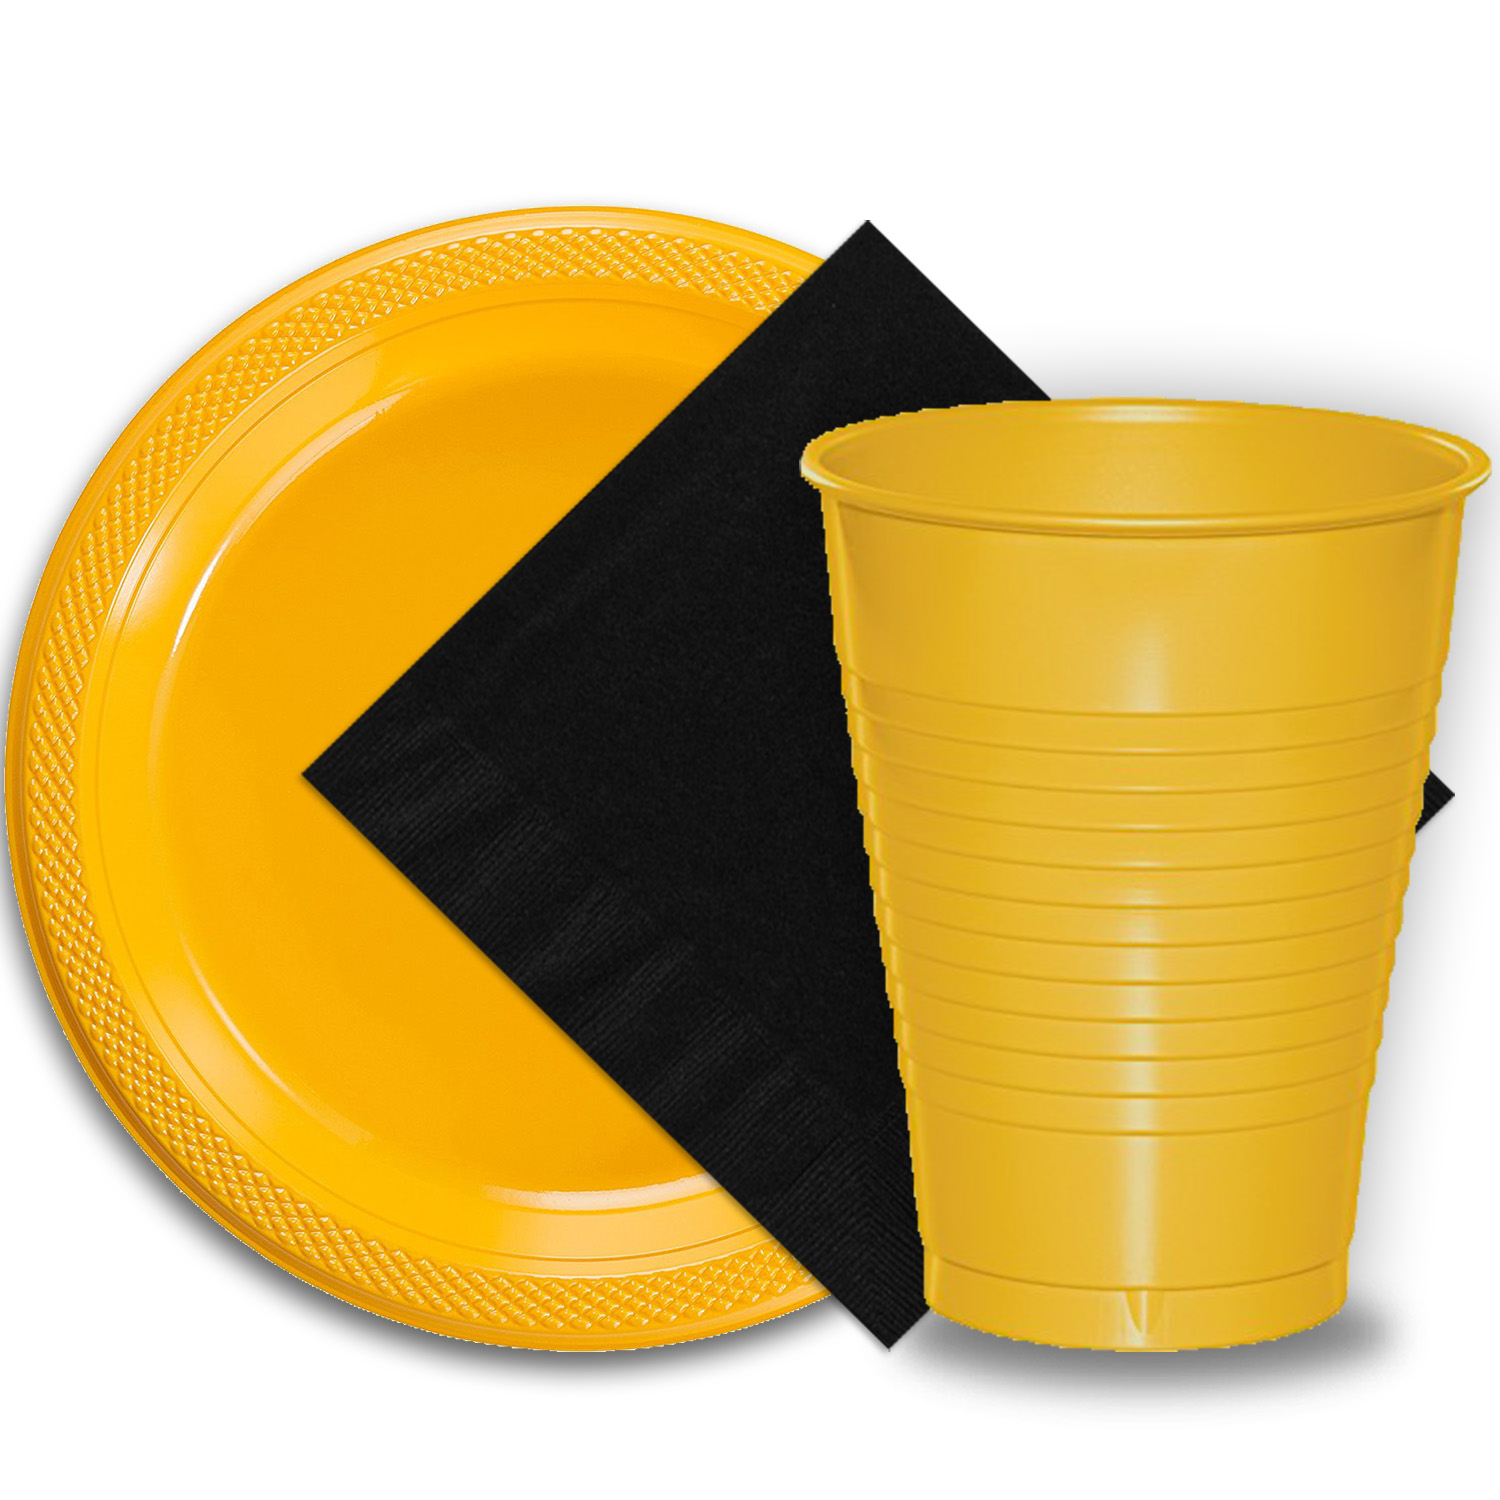 "50 Yellow Plastic Plates (9""), 50 Yellow Plastic Cups (12 oz.), and 50 Black Paper Napkins, Dazzelling Colored Disposable Party Supplies Tableware Set for Fifty Guests."